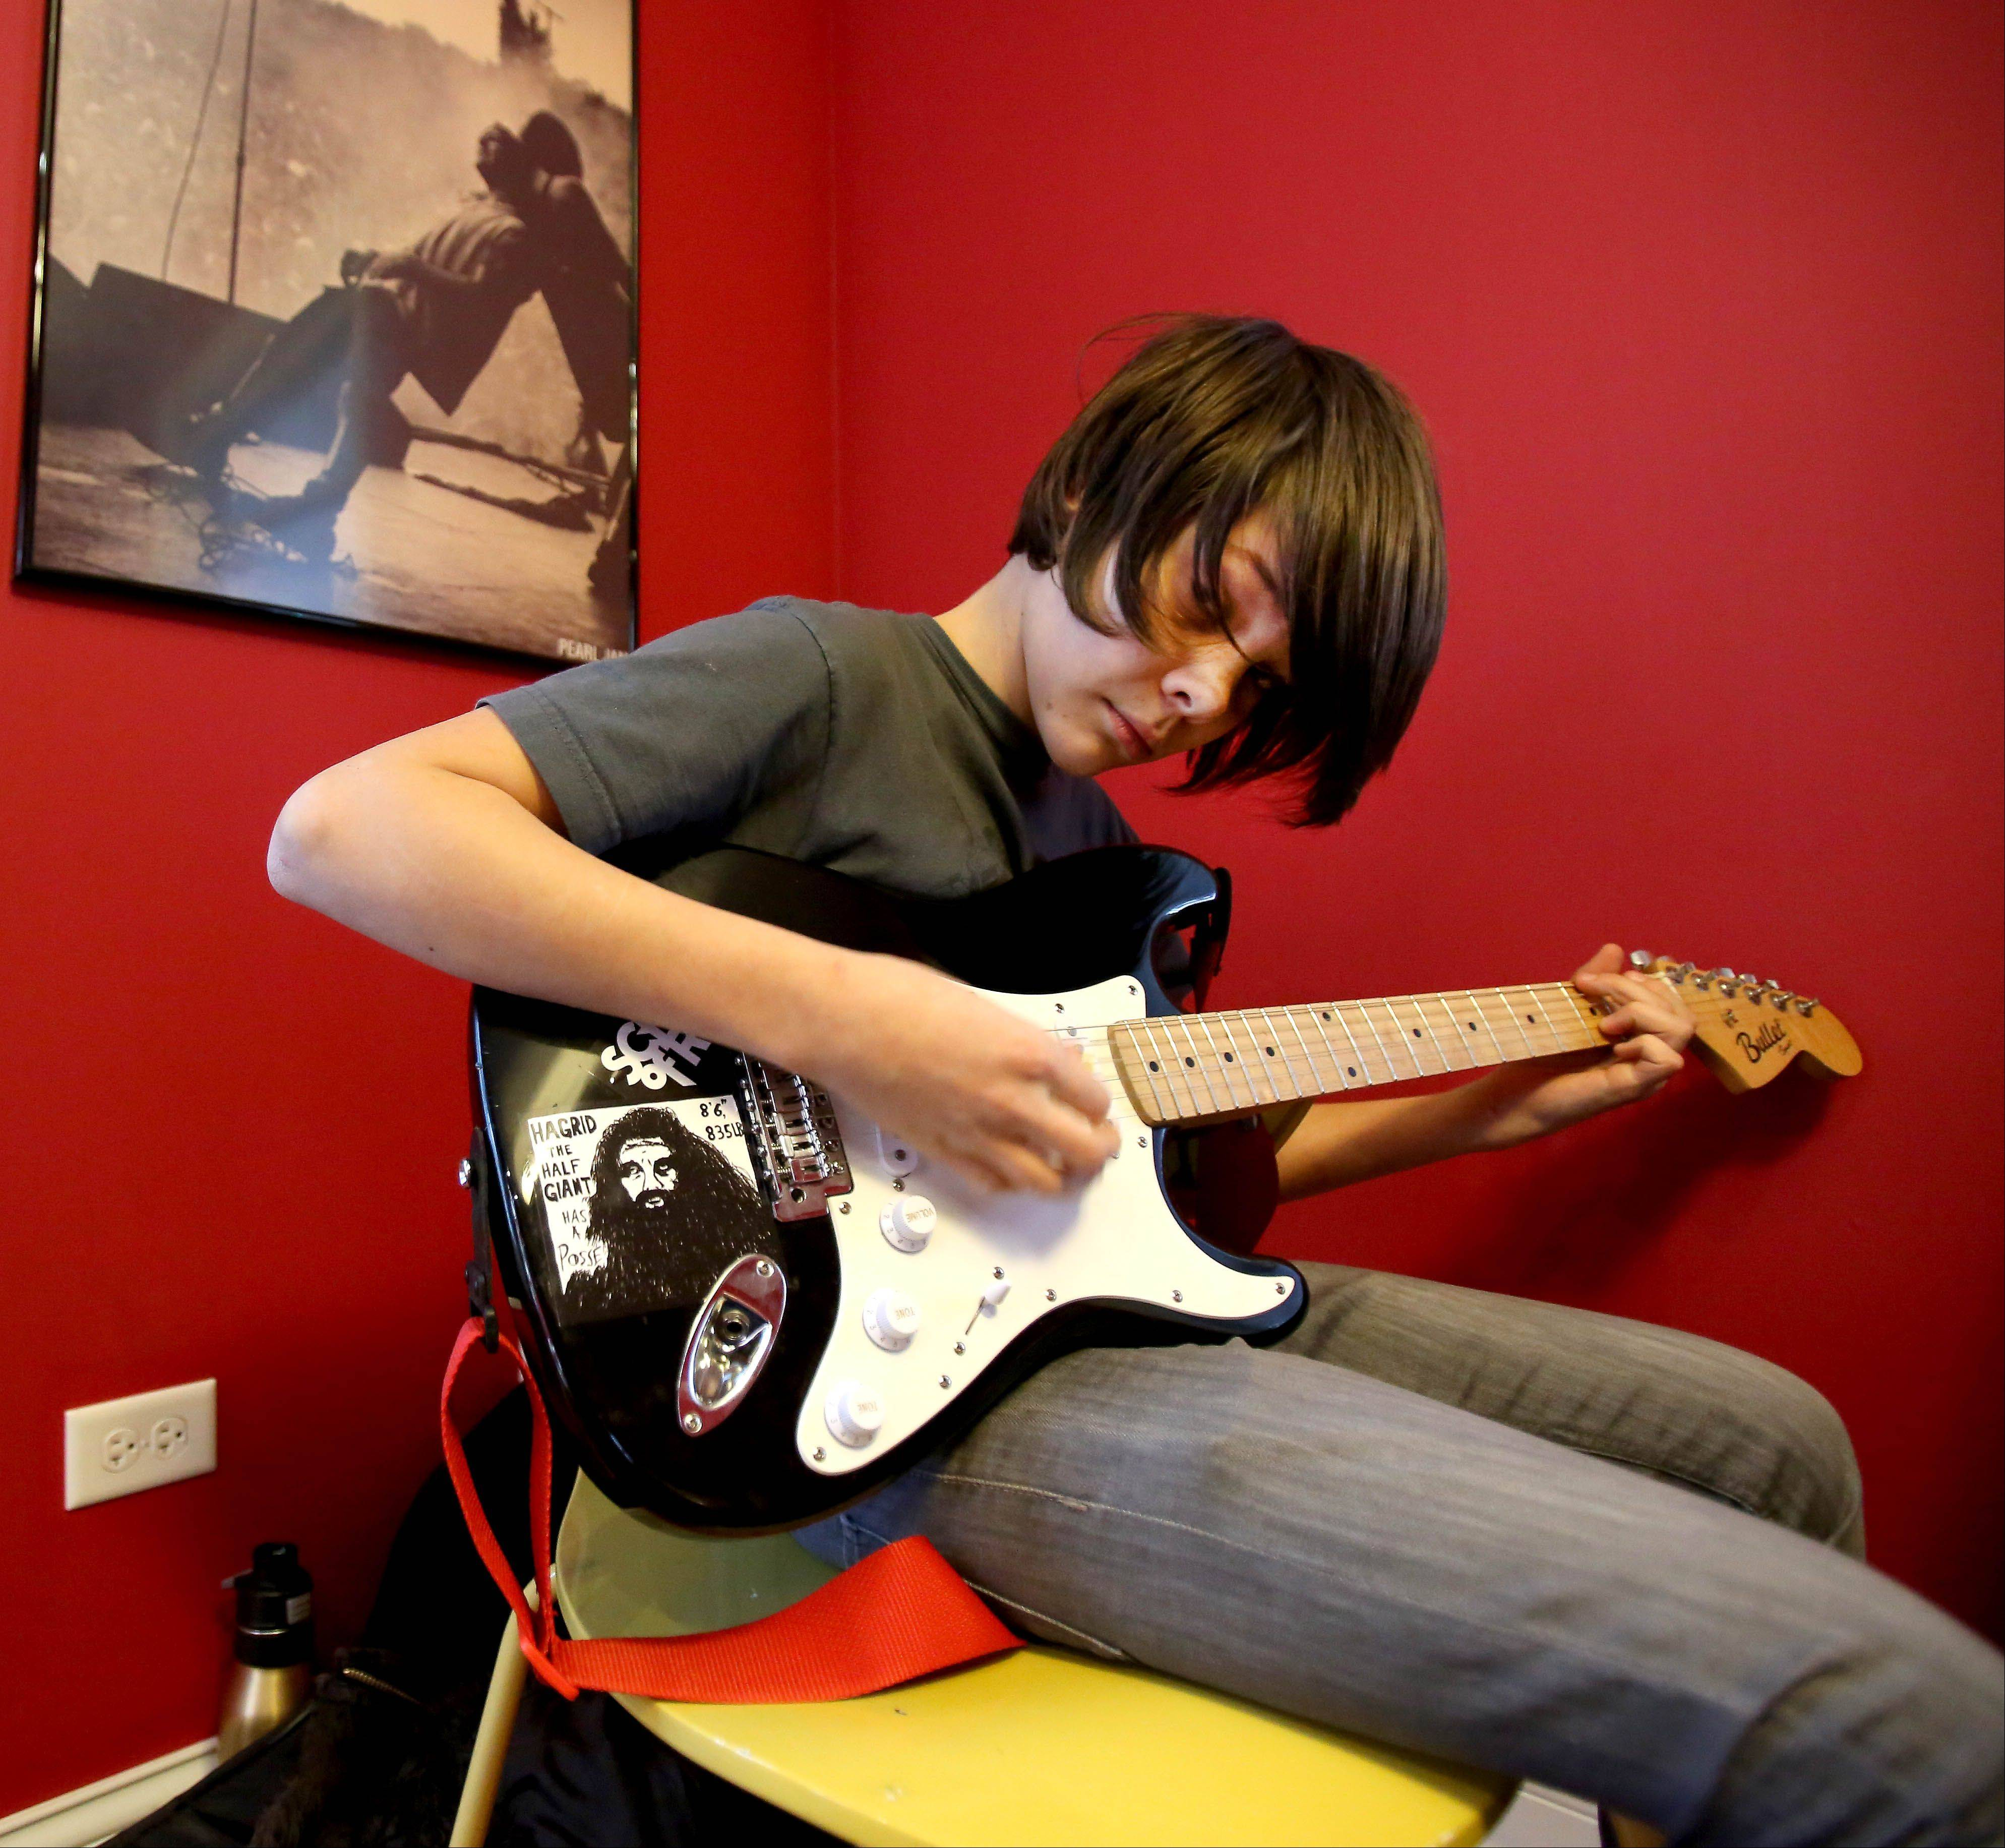 Elliott Dombrowski, 13, of Bolingbrook puts in some guitar practice at the School of Rock in Naperville.